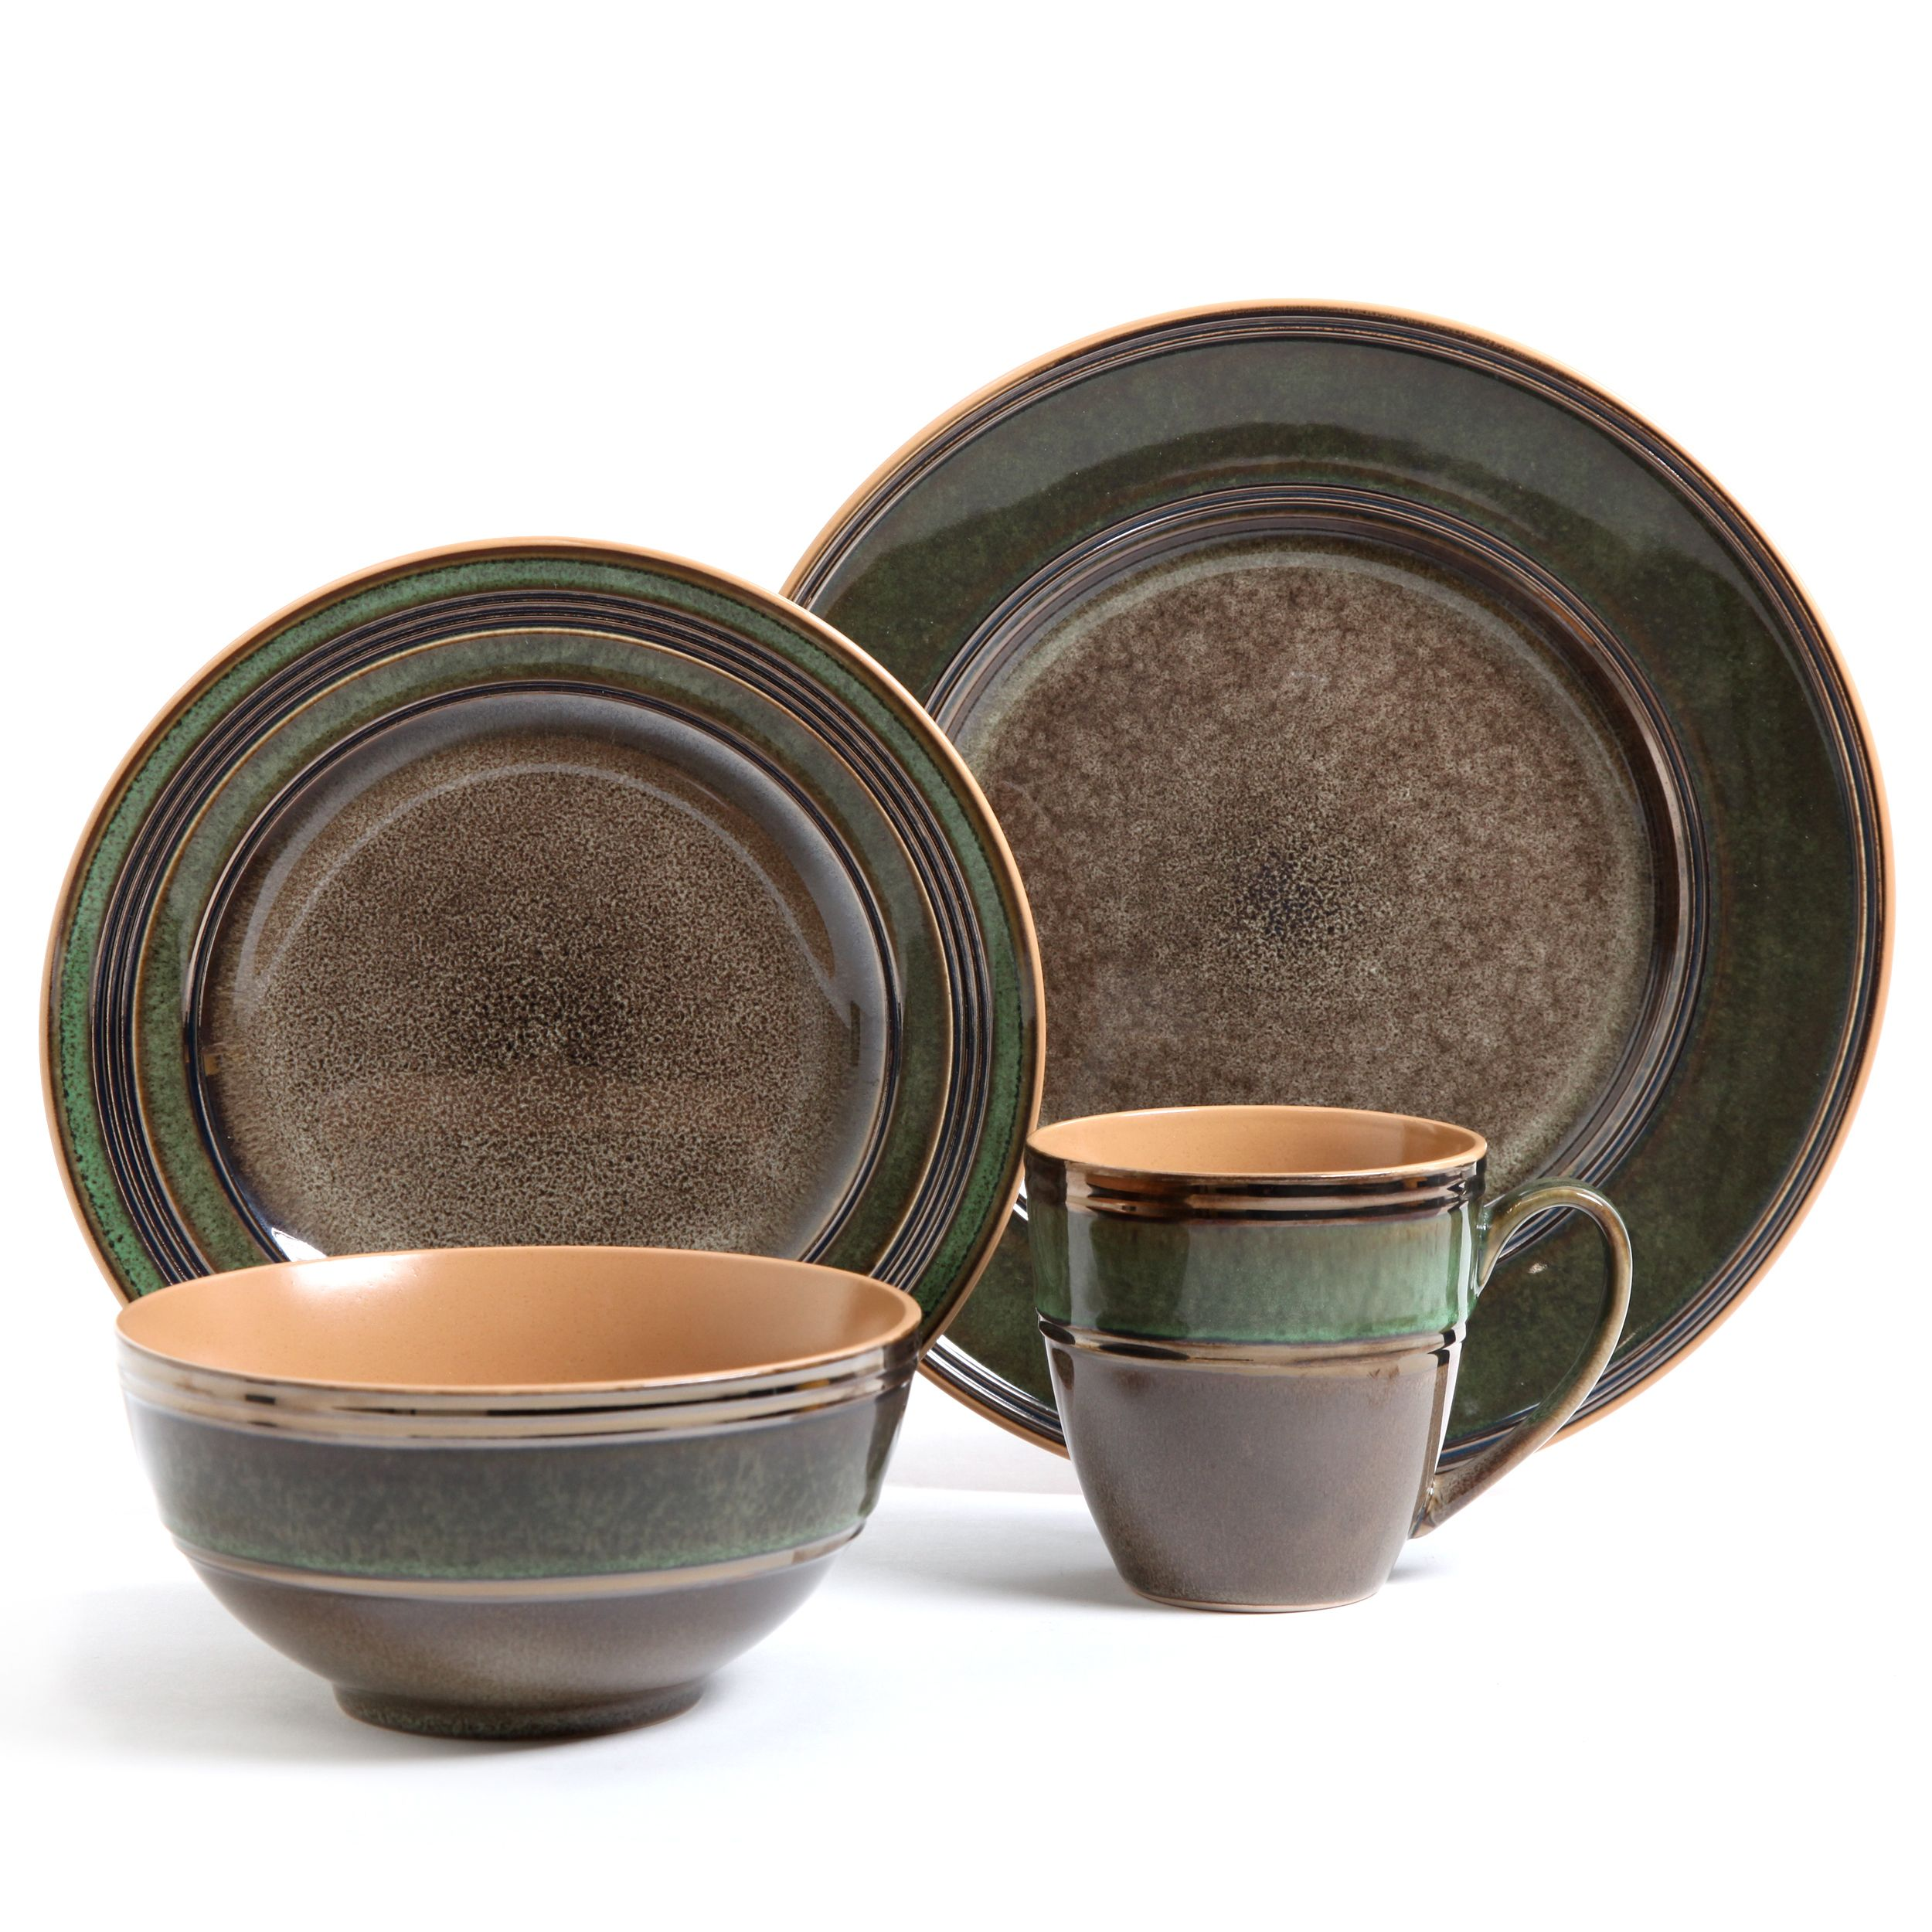 The Marmara Park dinnerware set from Gibson Elite features a contemporary design in earthy brown and  sc 1 st  Pinterest & The Marmara Park dinnerware set from Gibson Elite features a ...